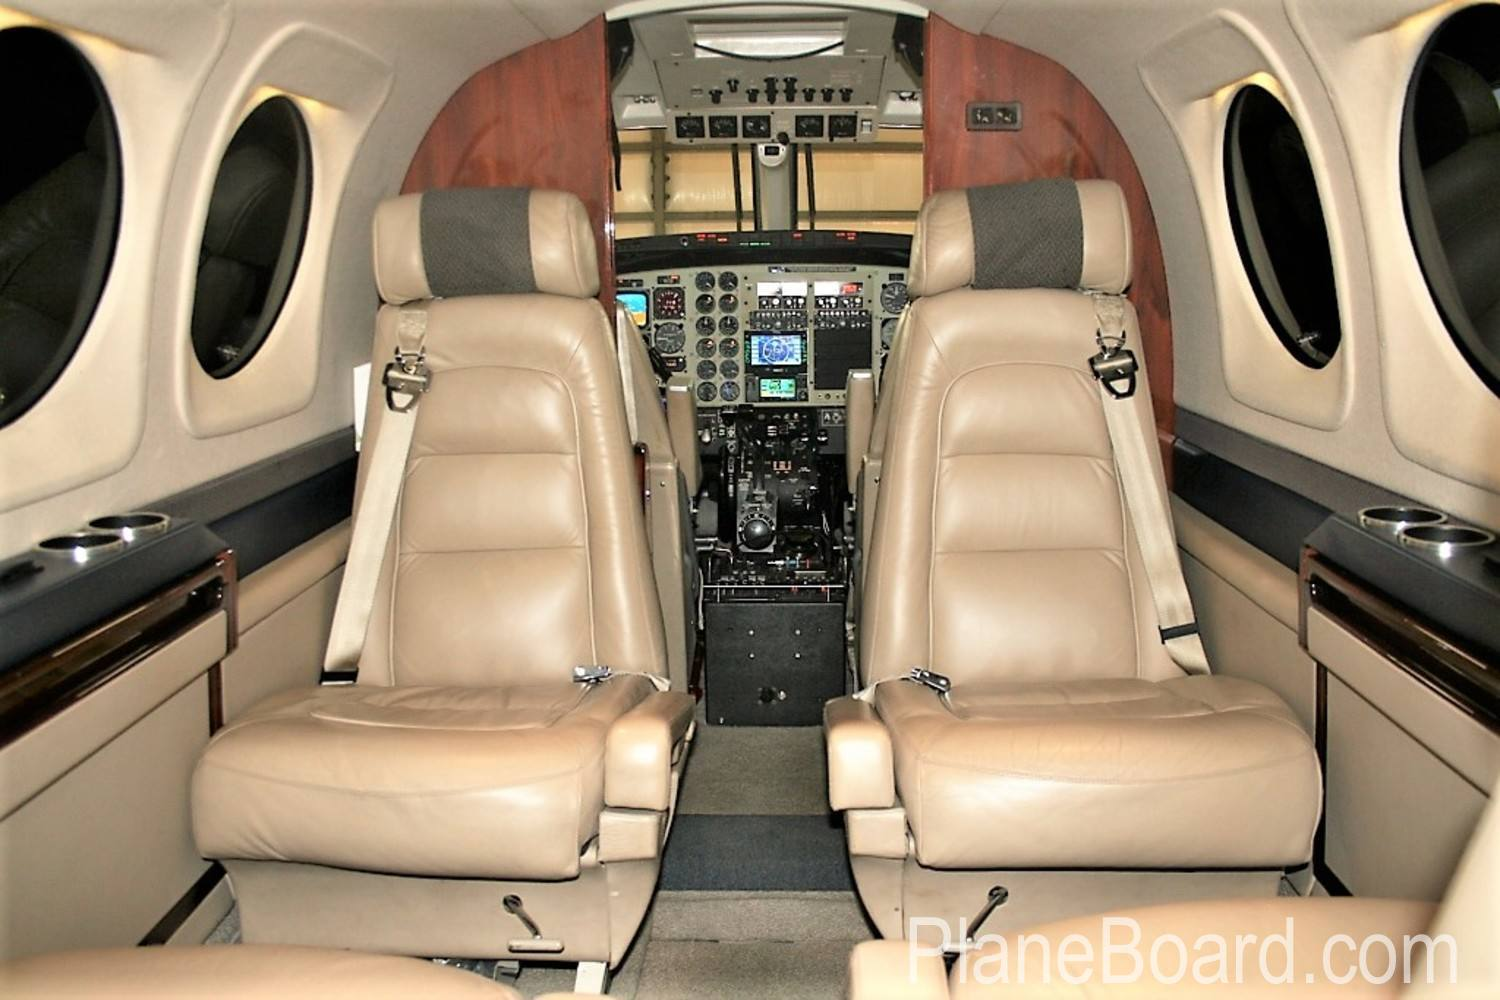 2005 Beechcraft King Air C90B interior 9